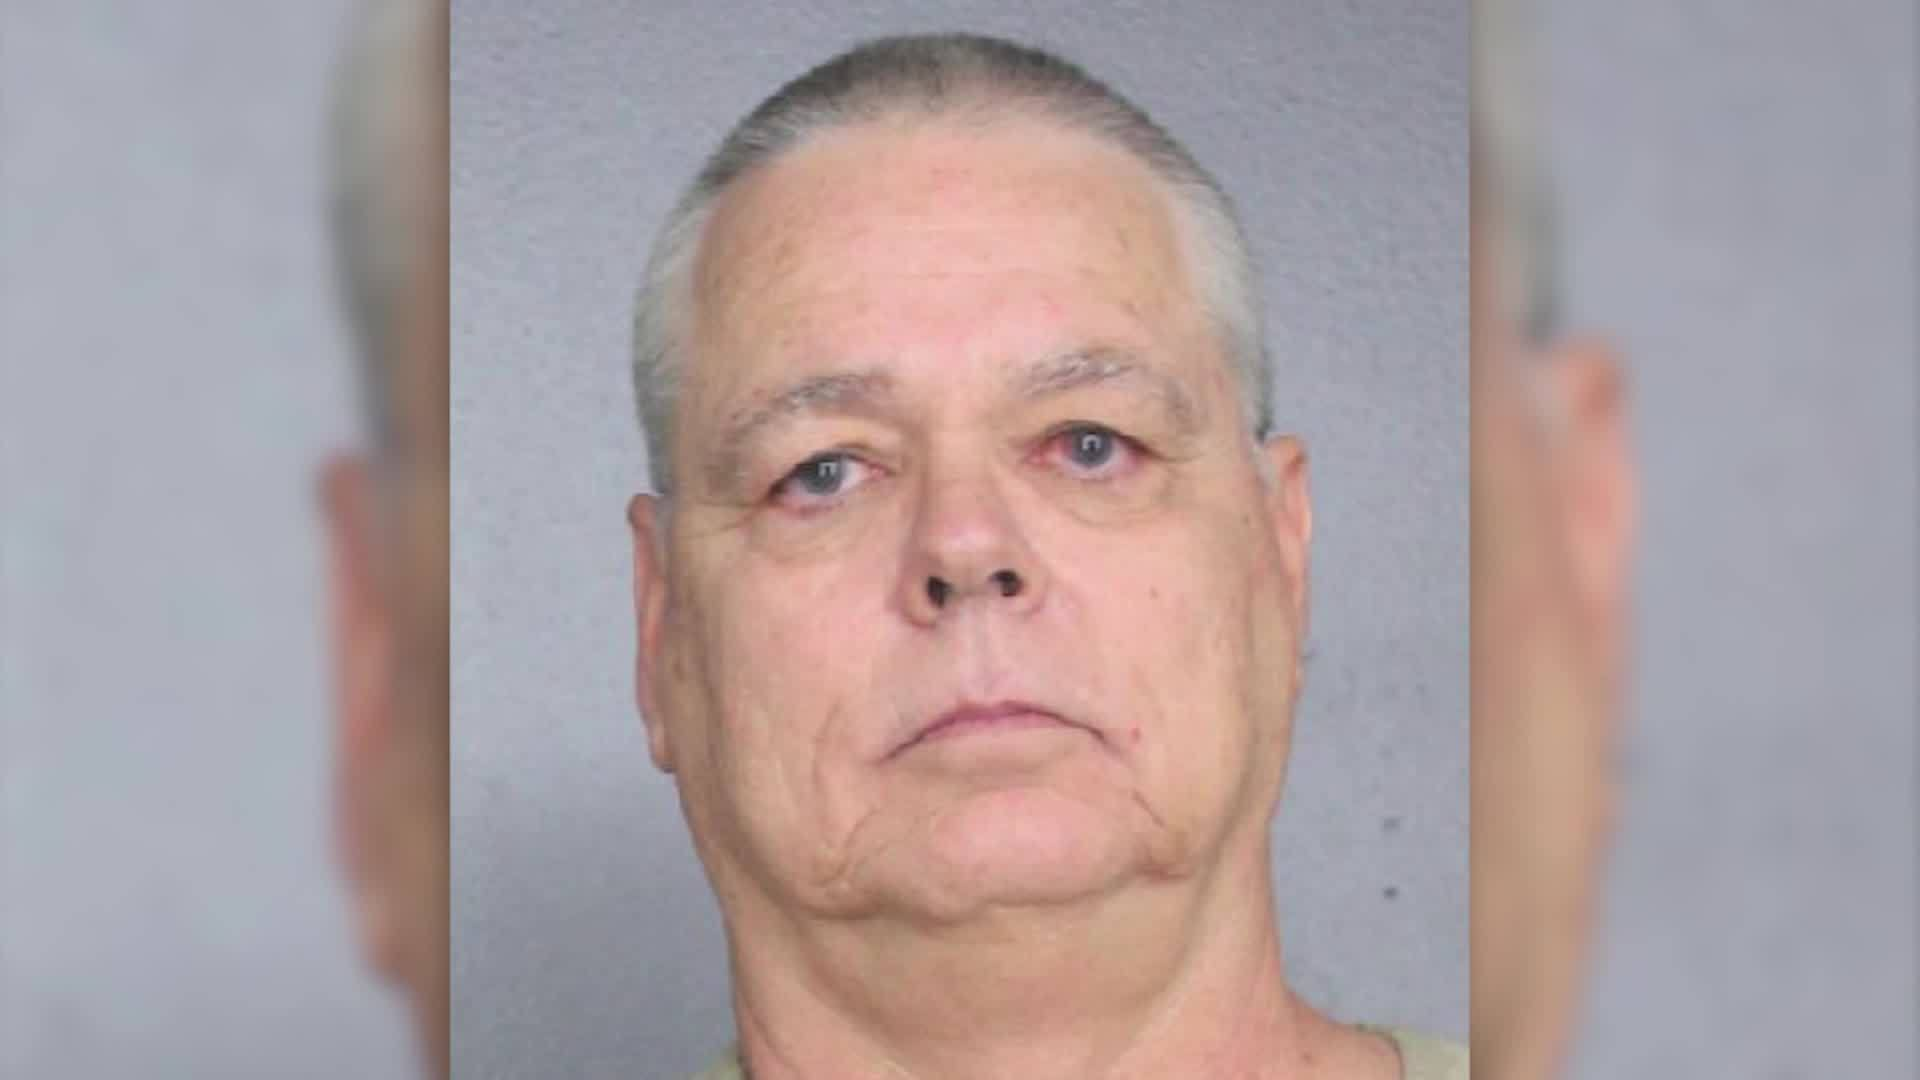 Florida_deputy_charged_for_inaction_duri_5_20190605105721-3156058